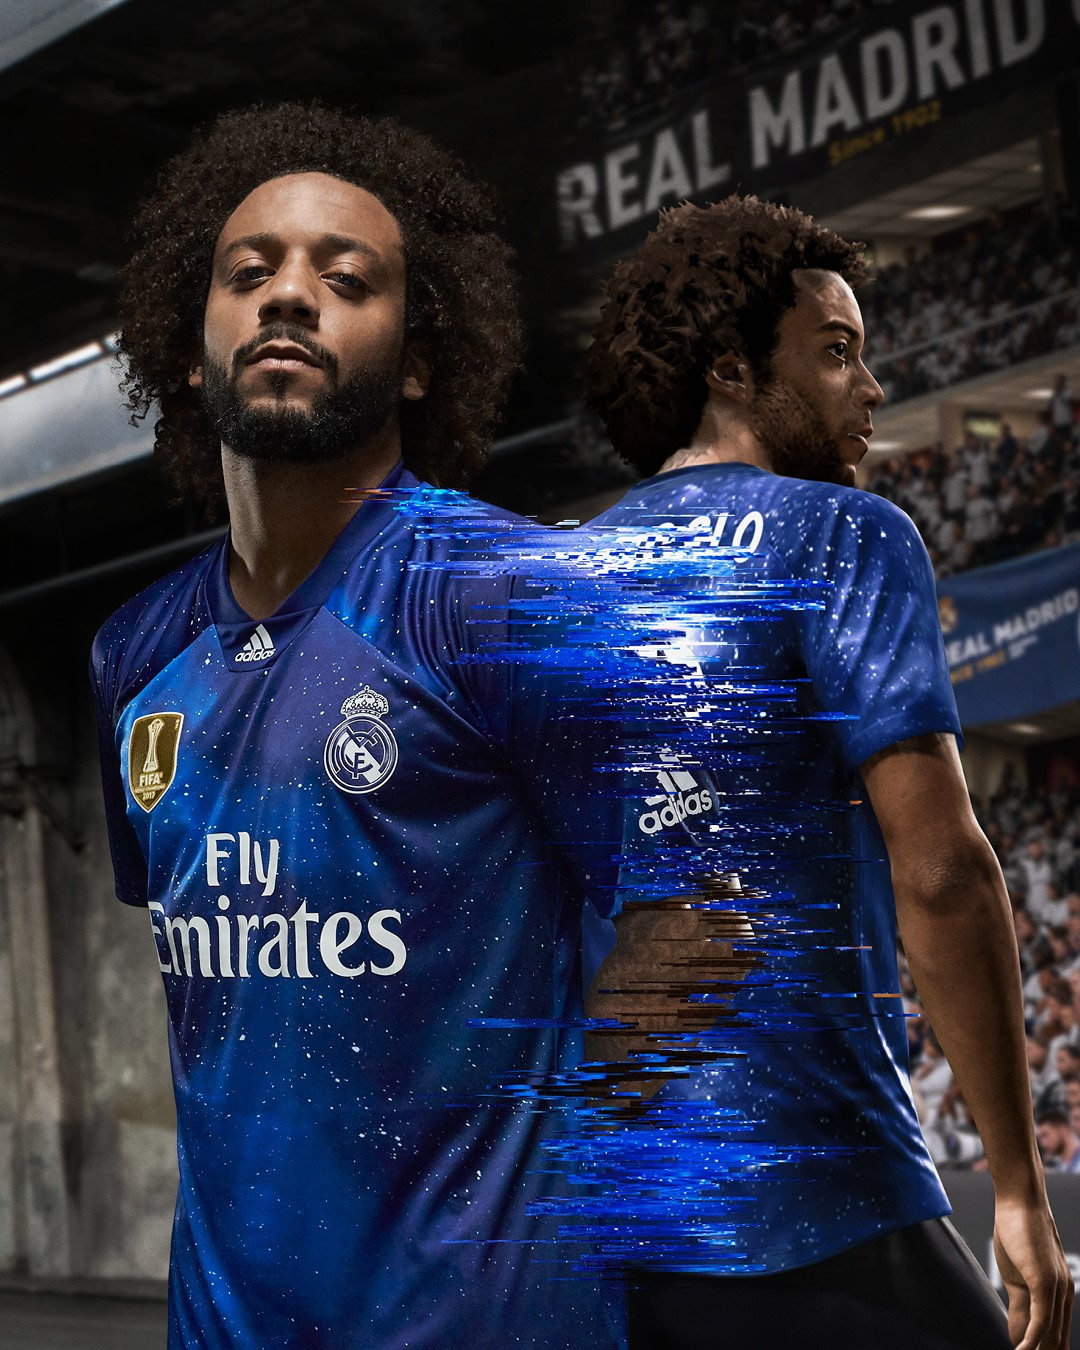 adidas Football + EA SPORTS Reveal Limited Edition Jerseys